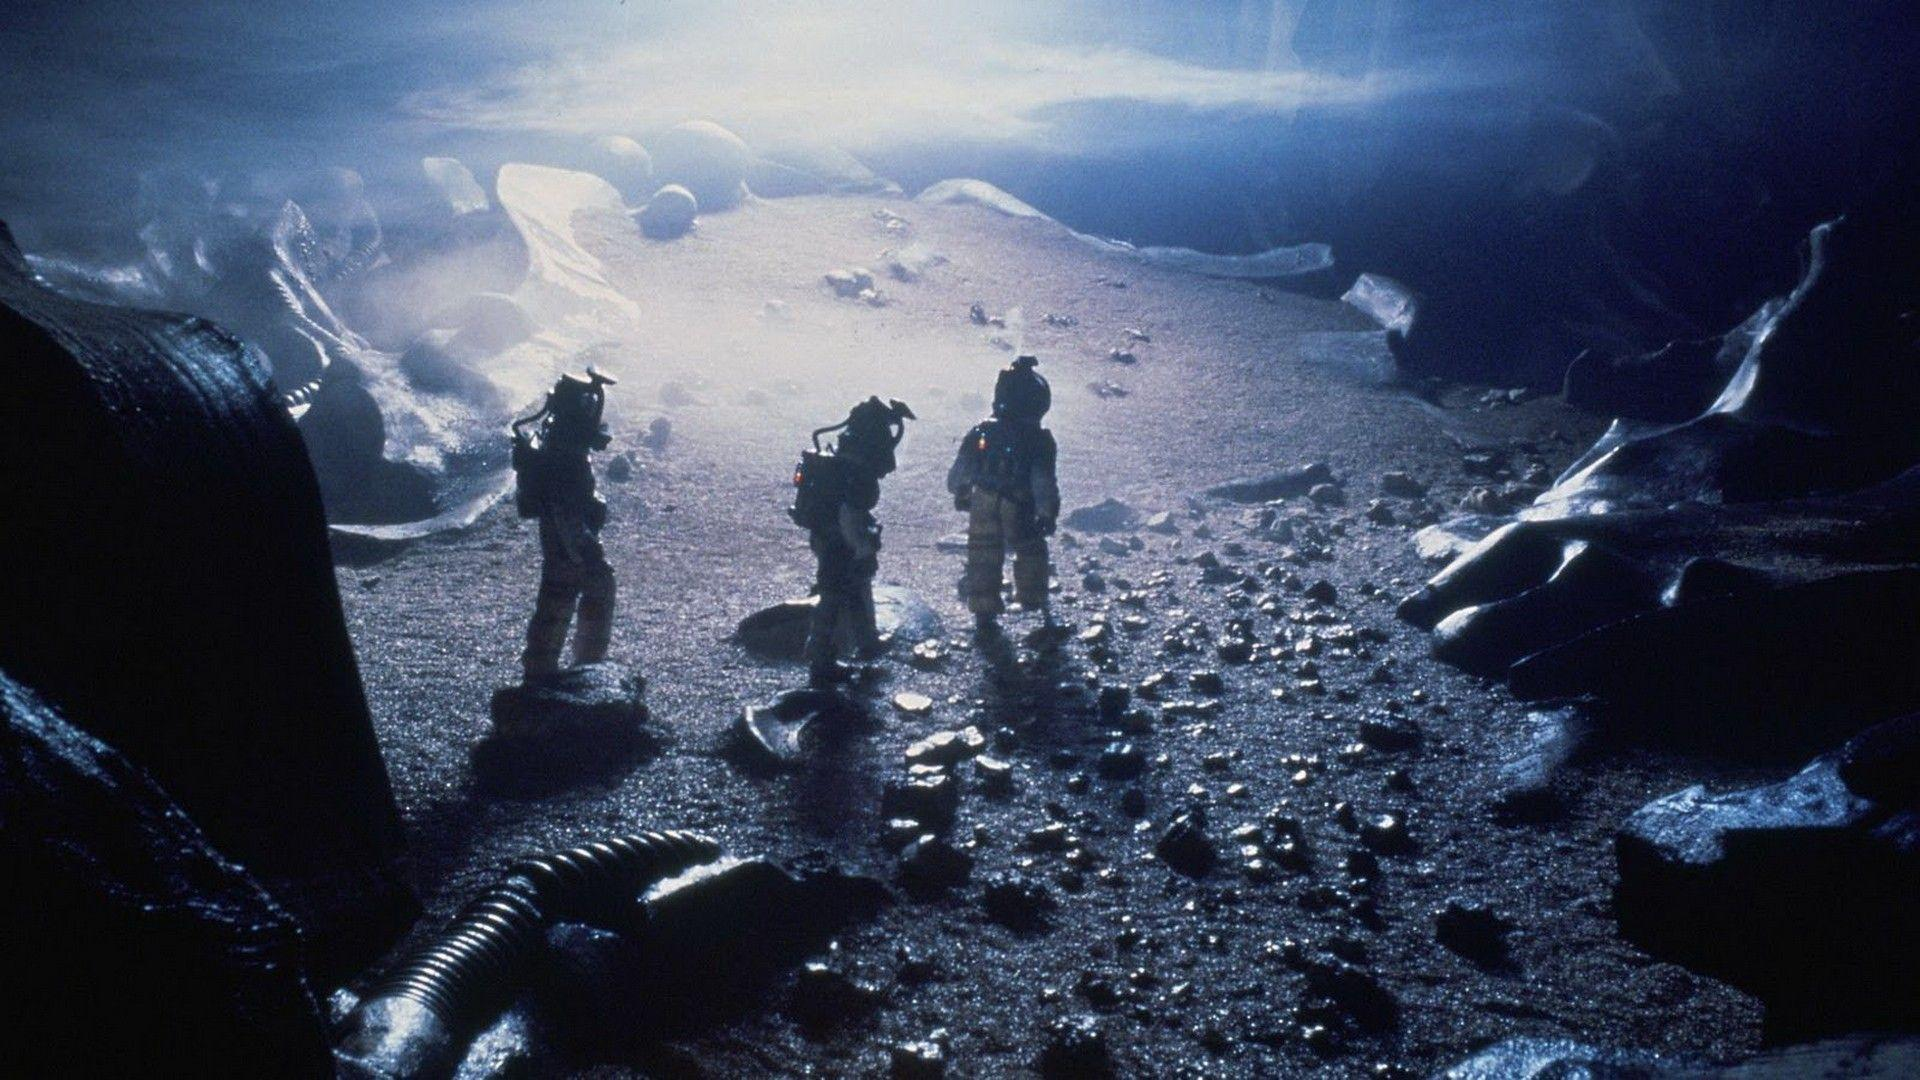 Astronauts from the movie Prometheus wallpapers and image